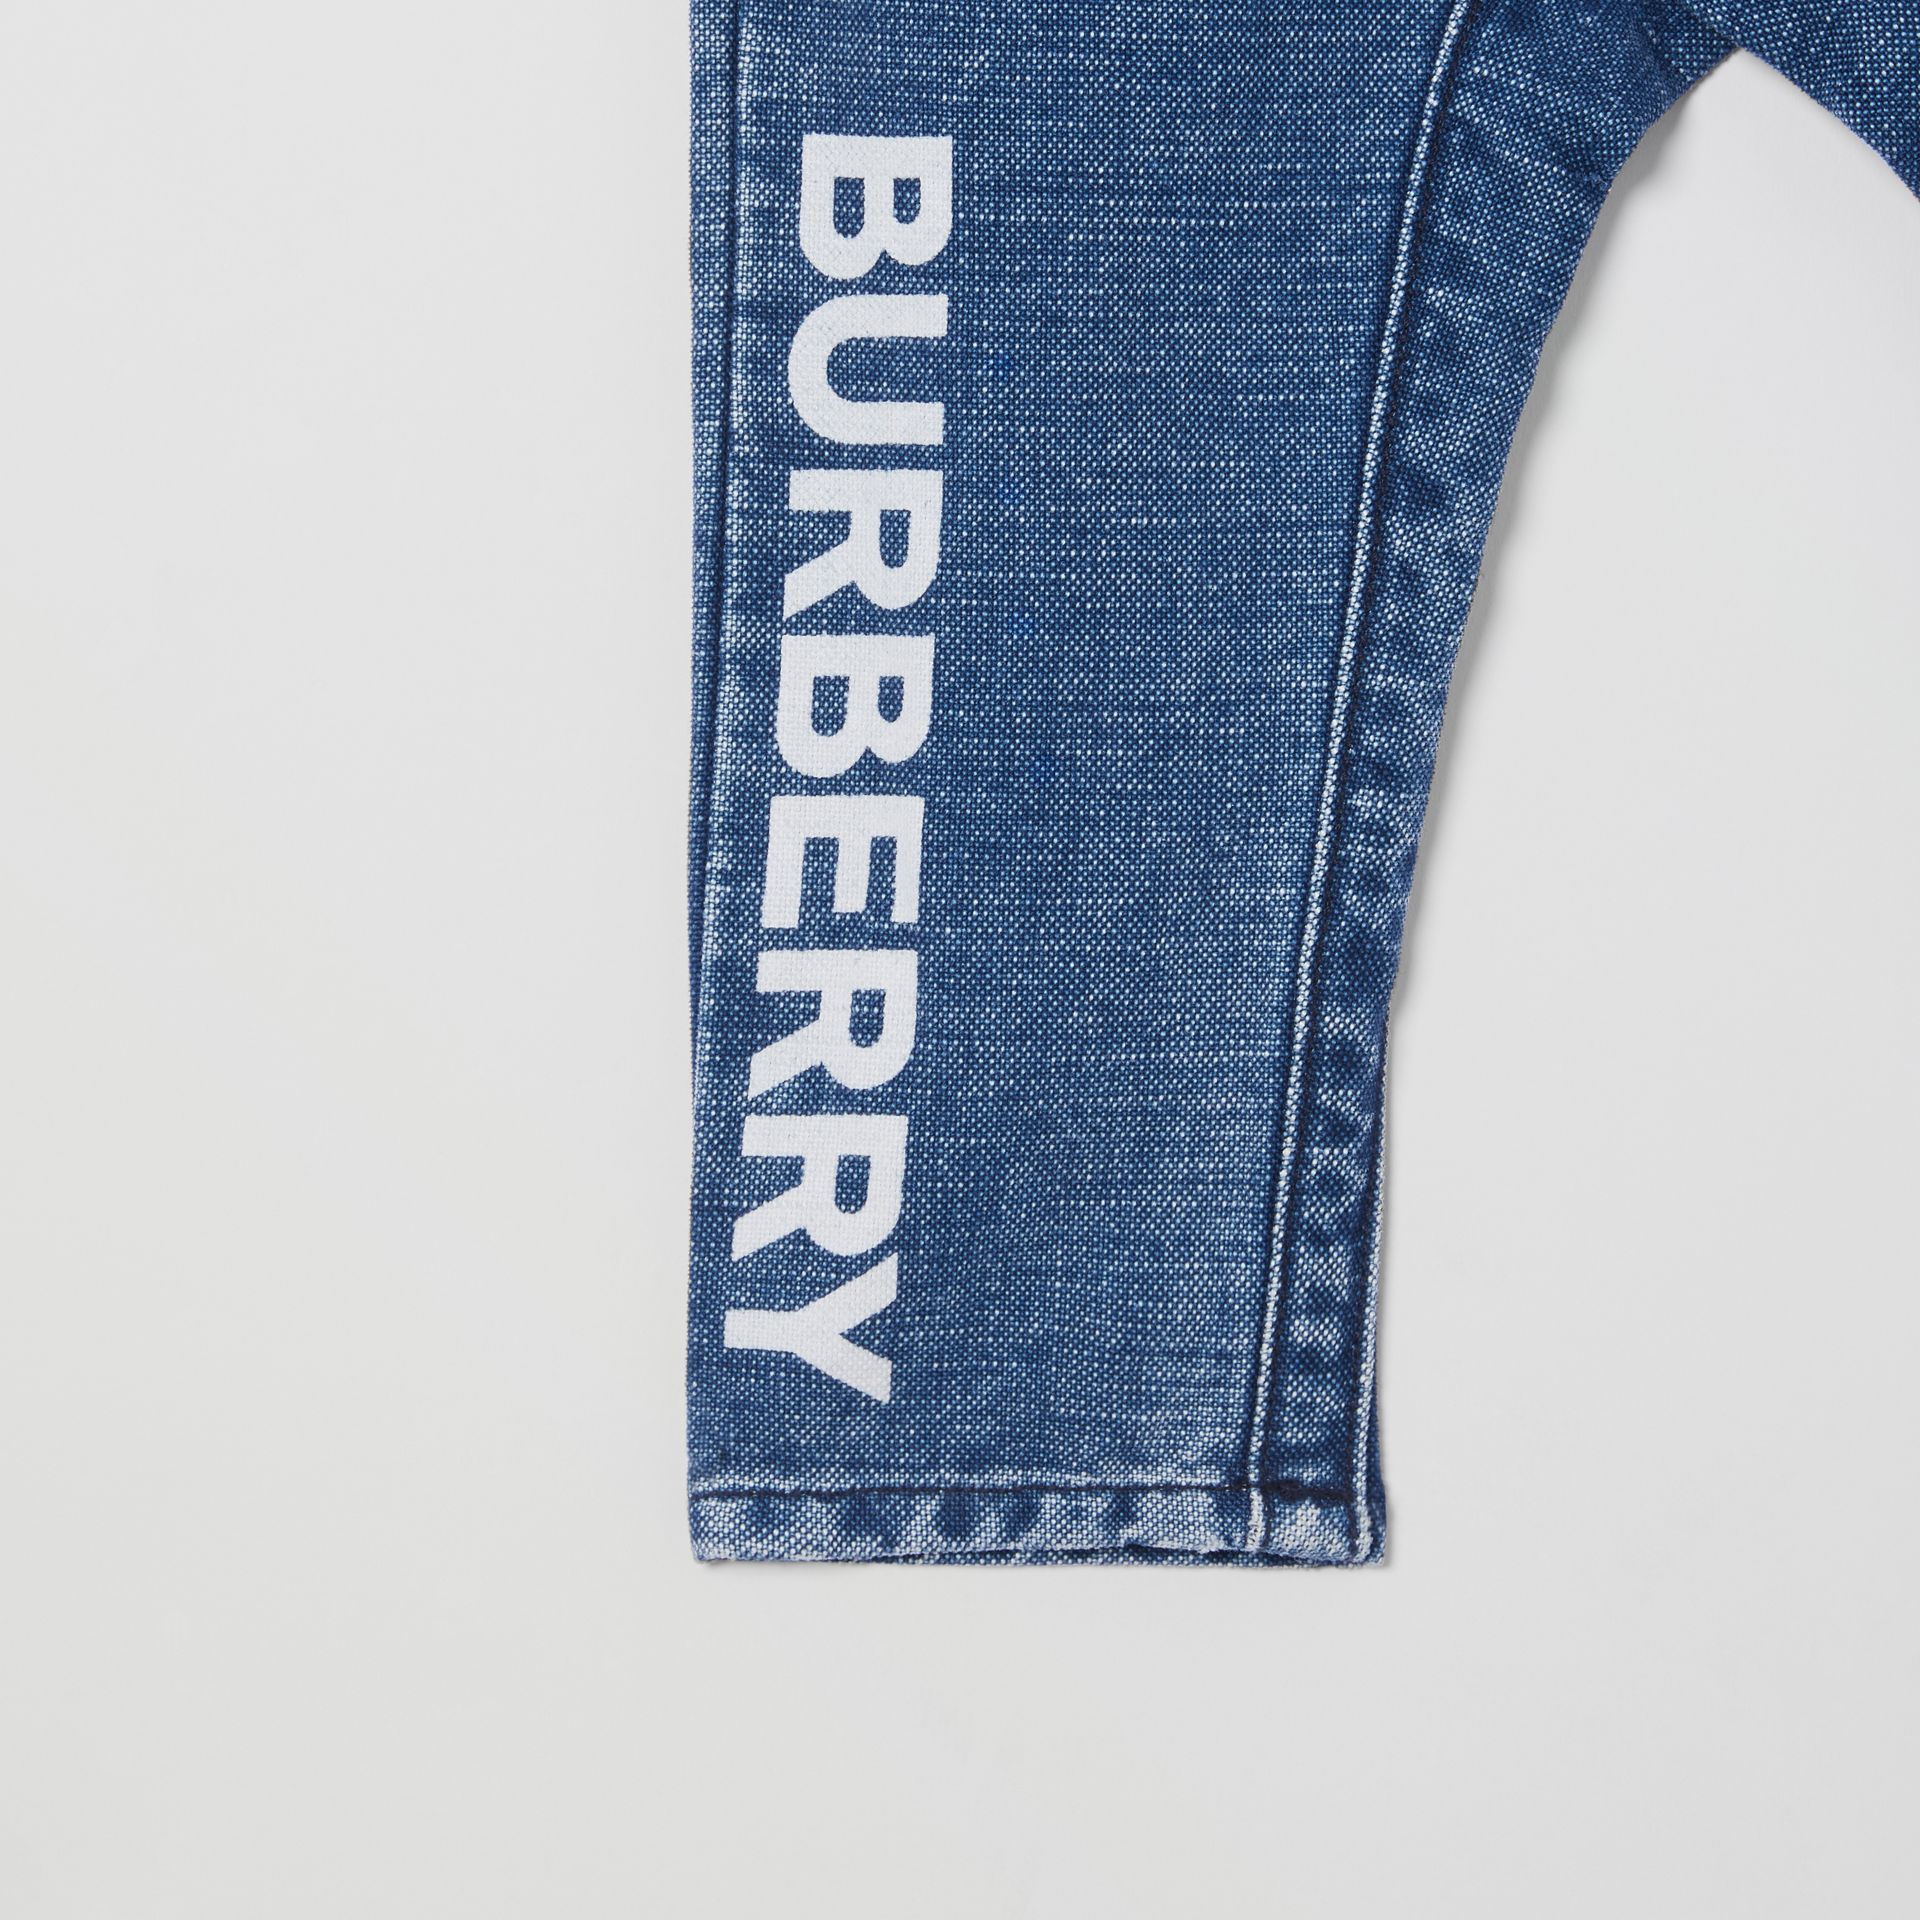 Logo Print Japanese Denim Jeans in Indigo - Children | Burberry - gallery image 4